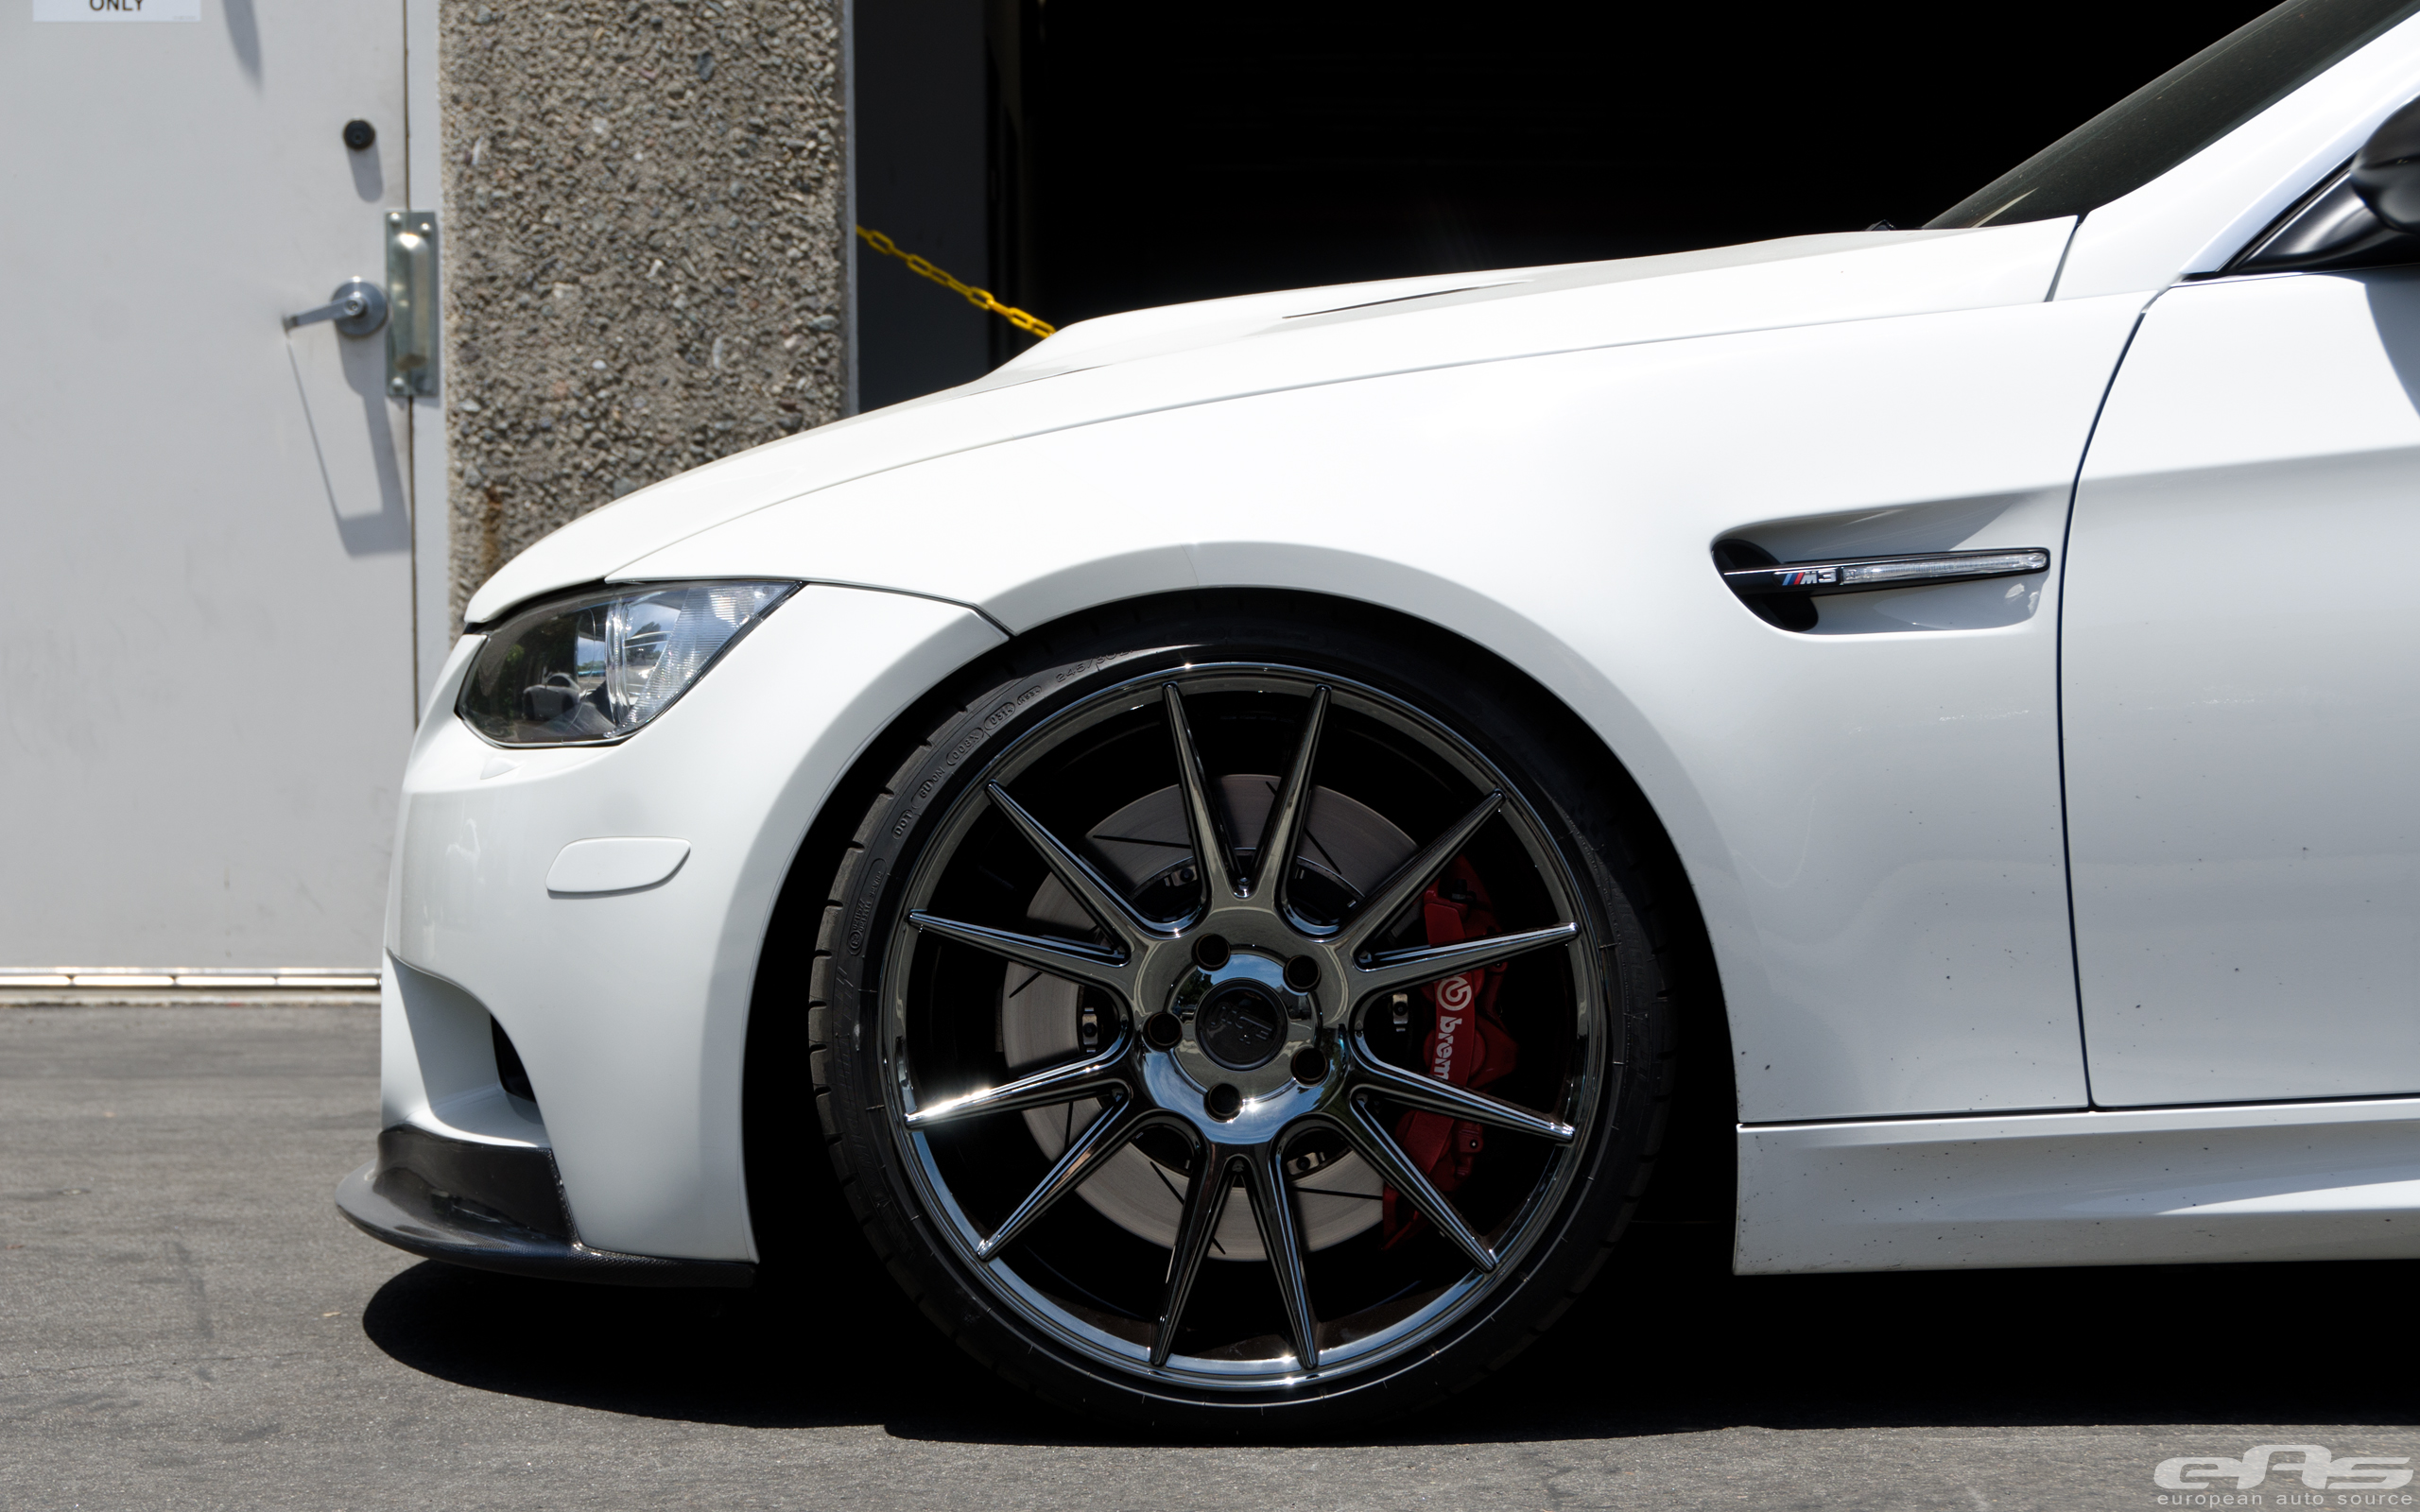 Bmw E93 M3 Convertible Gets Shiny Wheels At Eas Autoevolution